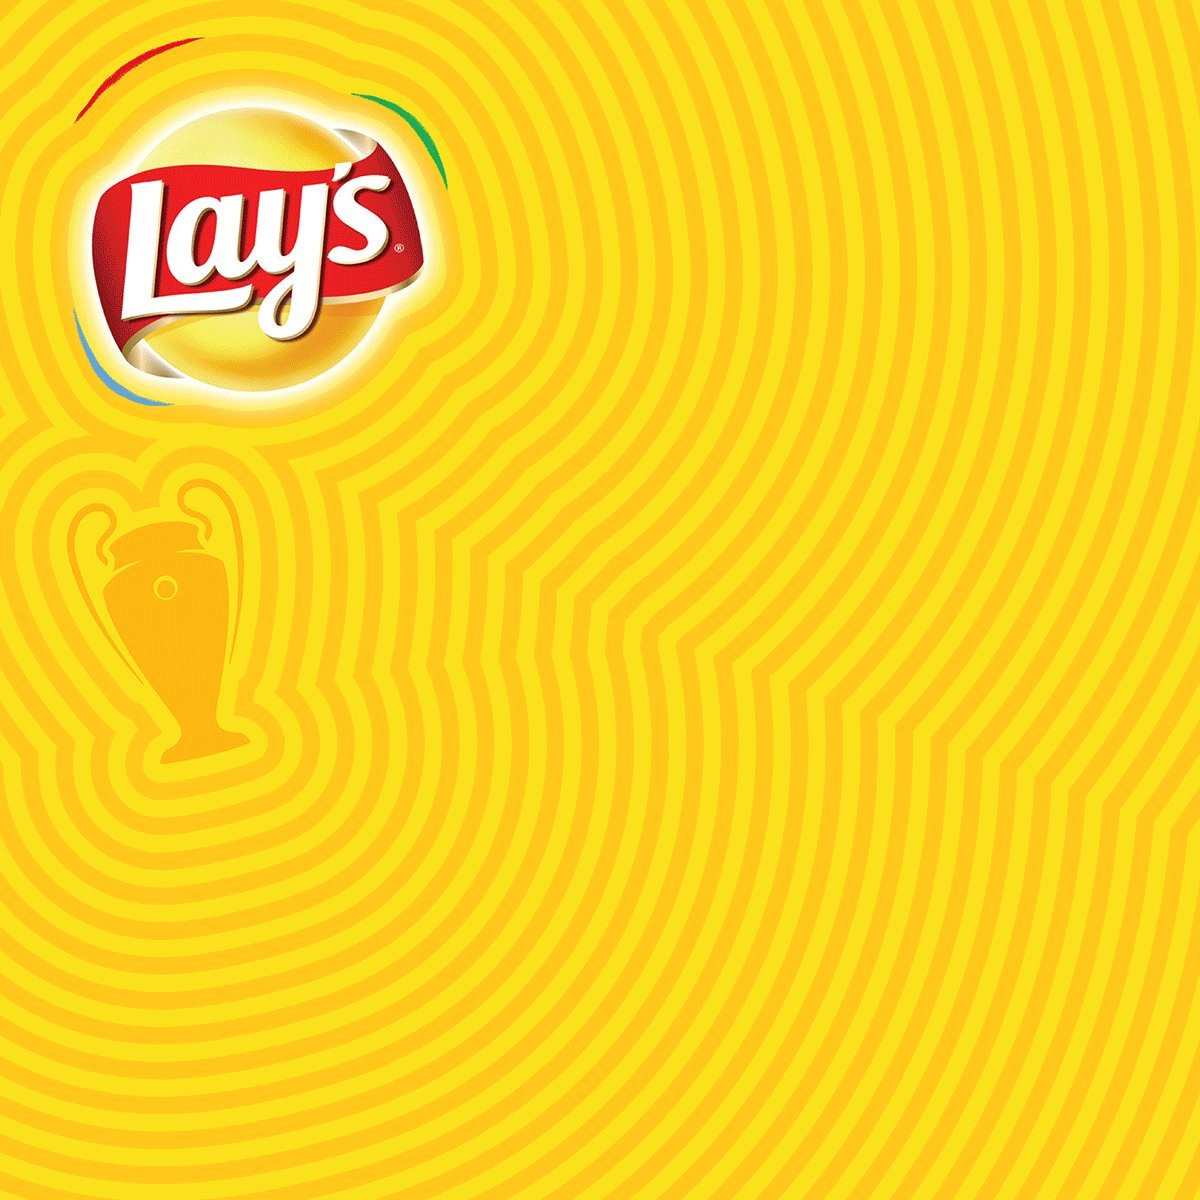 Lay's is giving YOU the chance to win tickets to the UEFA Champions League Final! Buy a promotional Lay's product to get your unique code. Be sure to enter via http://www.laysucl.co.za.  See T's & C's for dates and more info: https://bit.ly/2SwEyC0. #BringtheFlavour